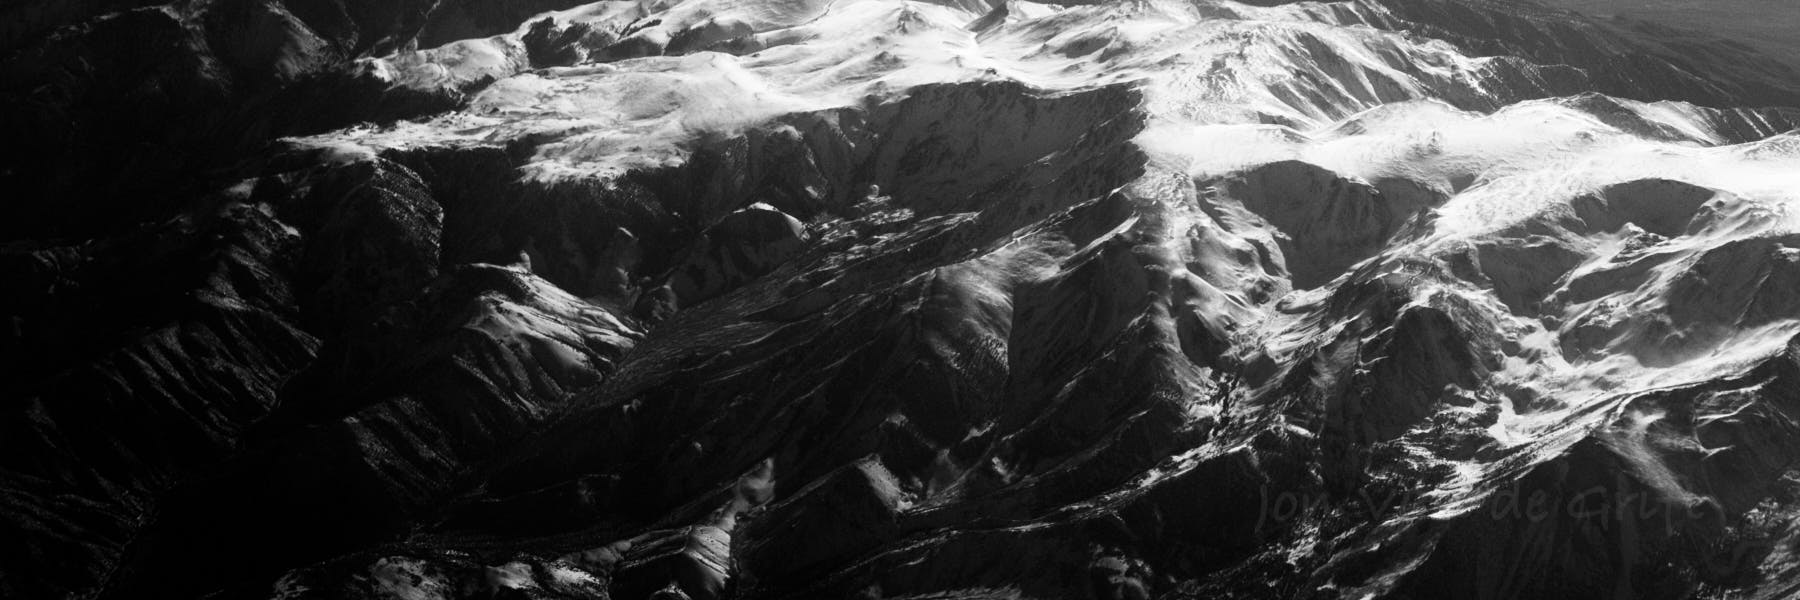 Black and white aerial photograph of snow pack on mountains in sunlight and shadow.